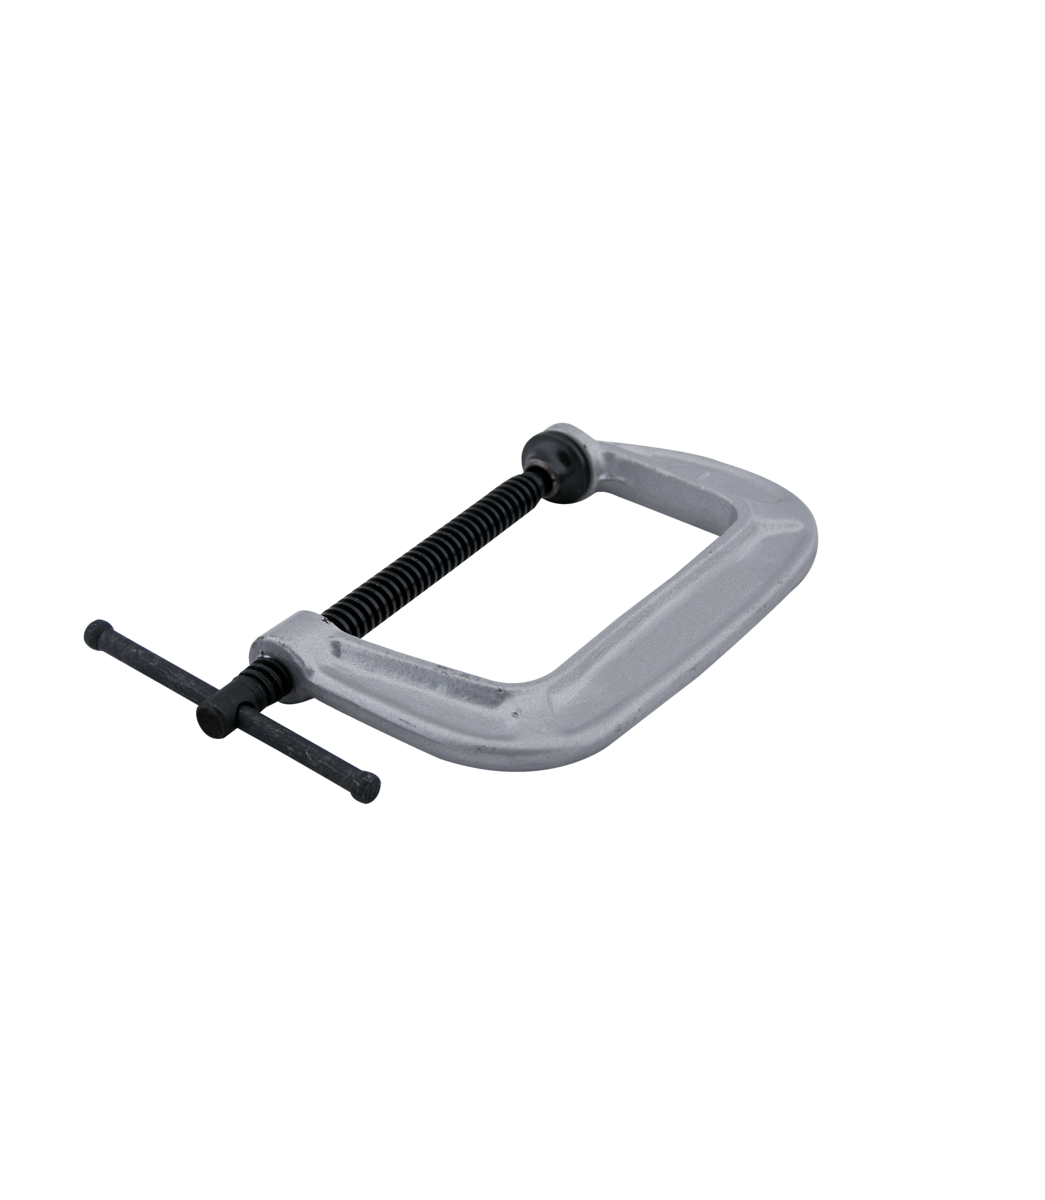 140 SERIES CARRIAGE C-CLAMPS